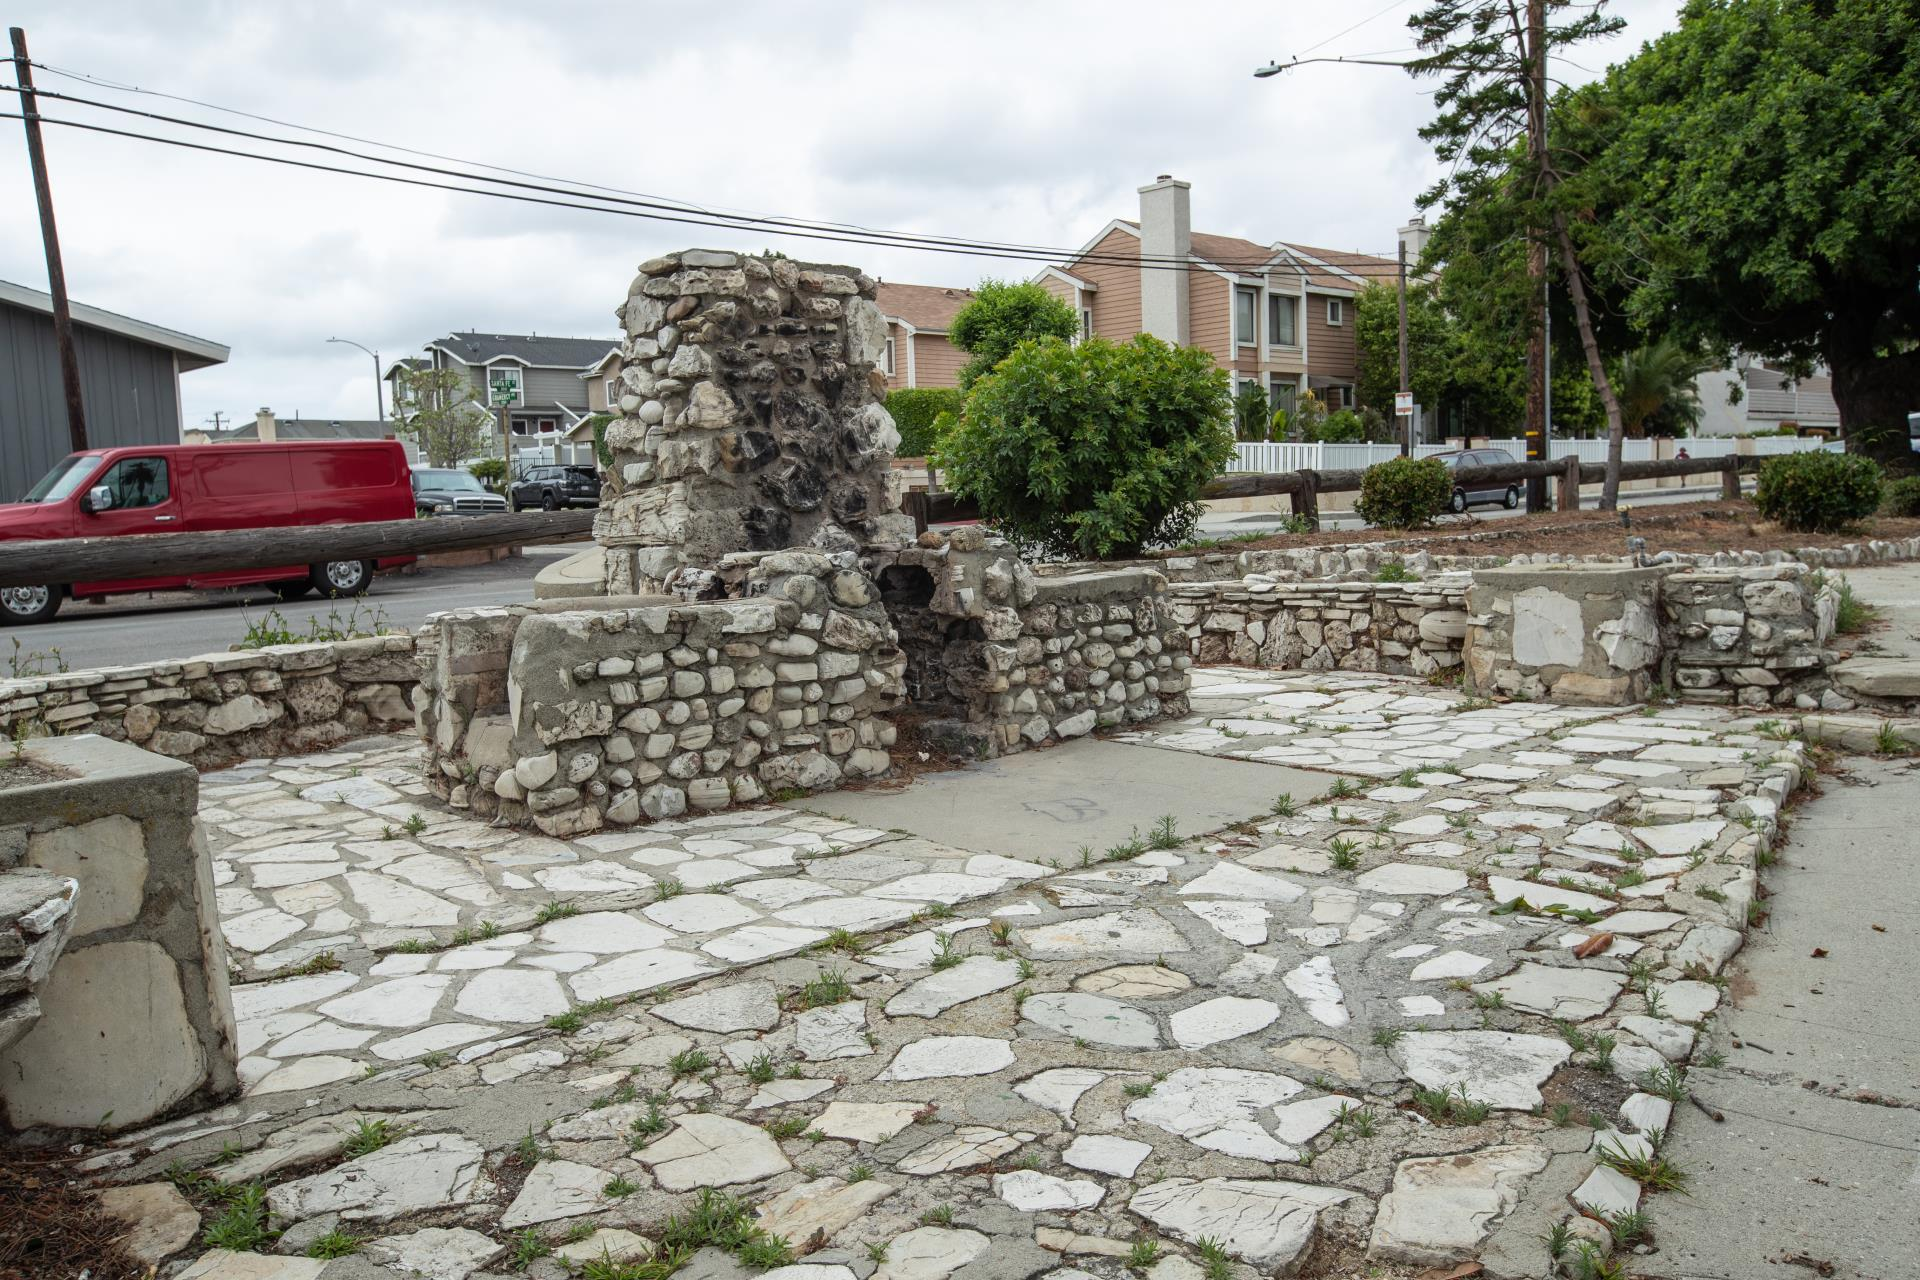 Stone structure across the street from houses and cars